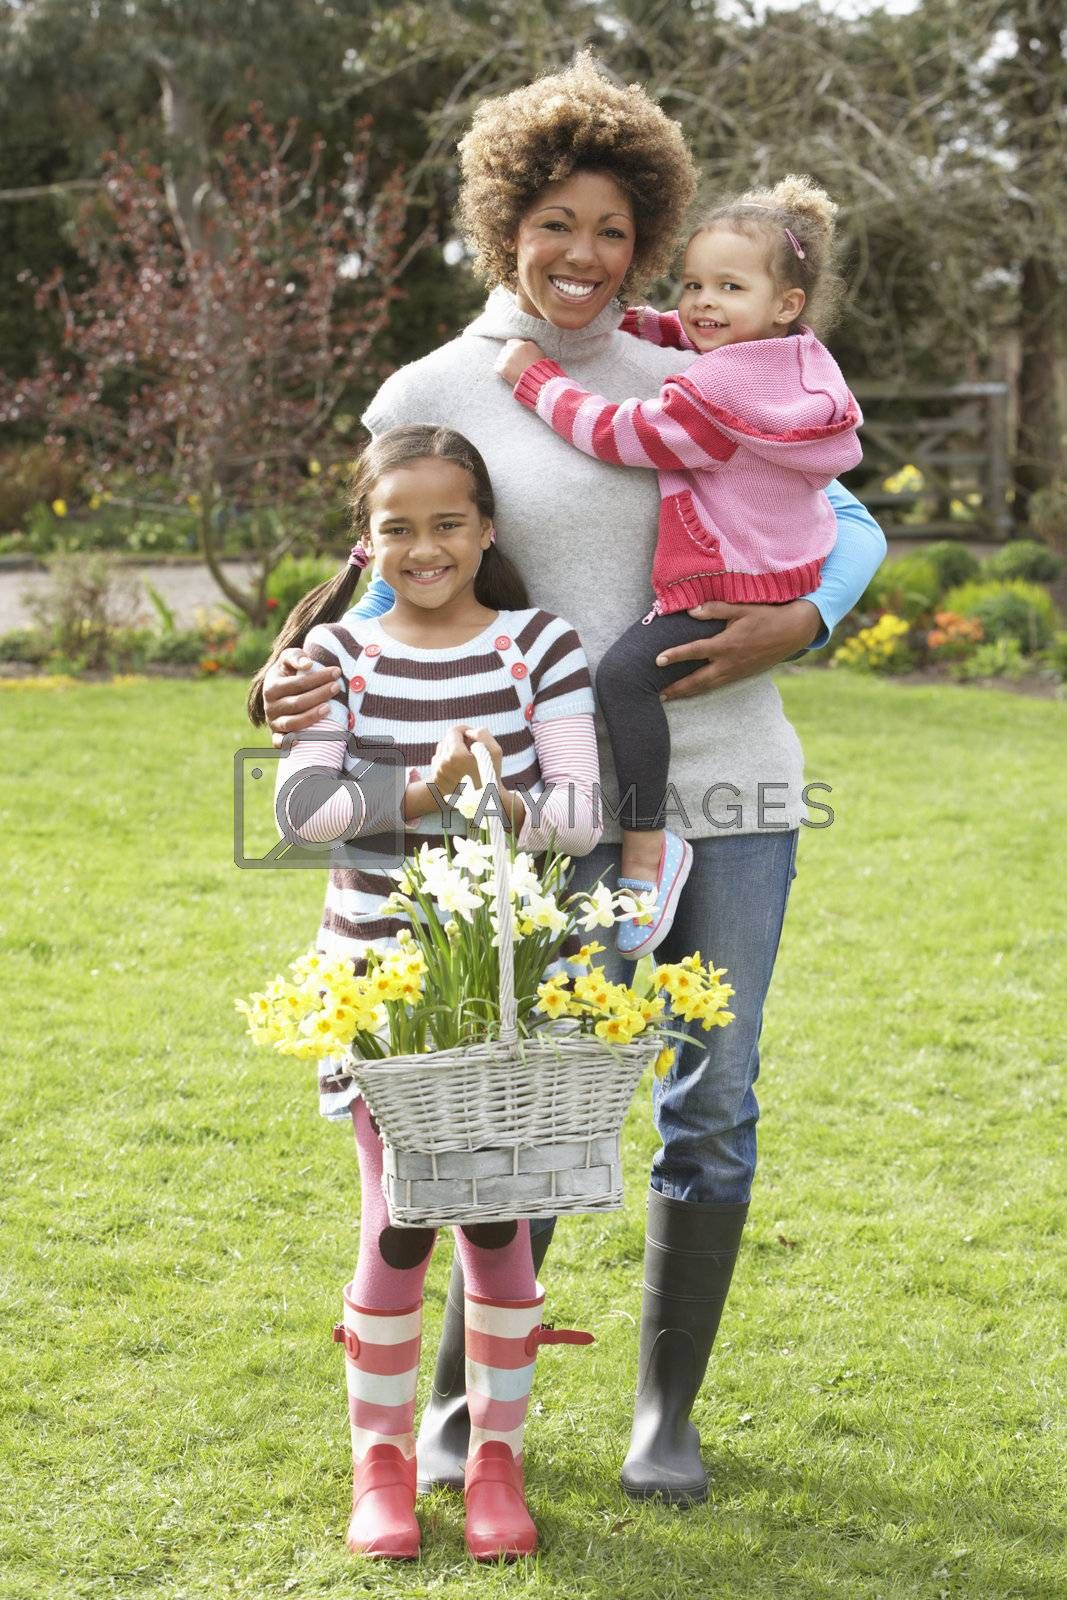 Royalty free image of Mother And Children Holding Basket Of Daffodils In Garden by omg_images